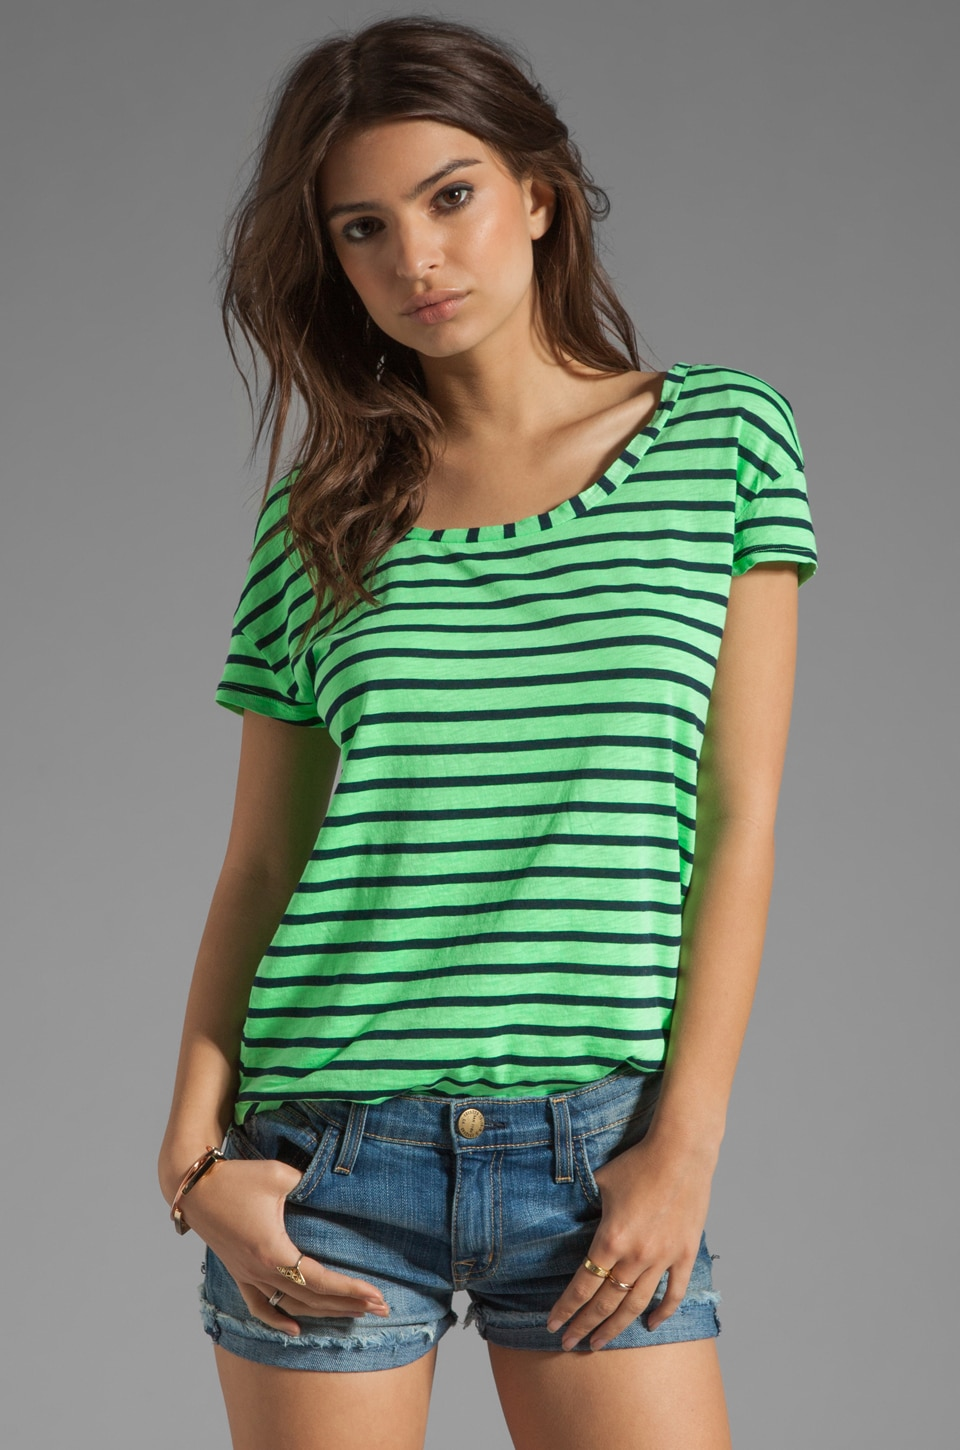 Splendid Miami Stripe Tee in Meadow